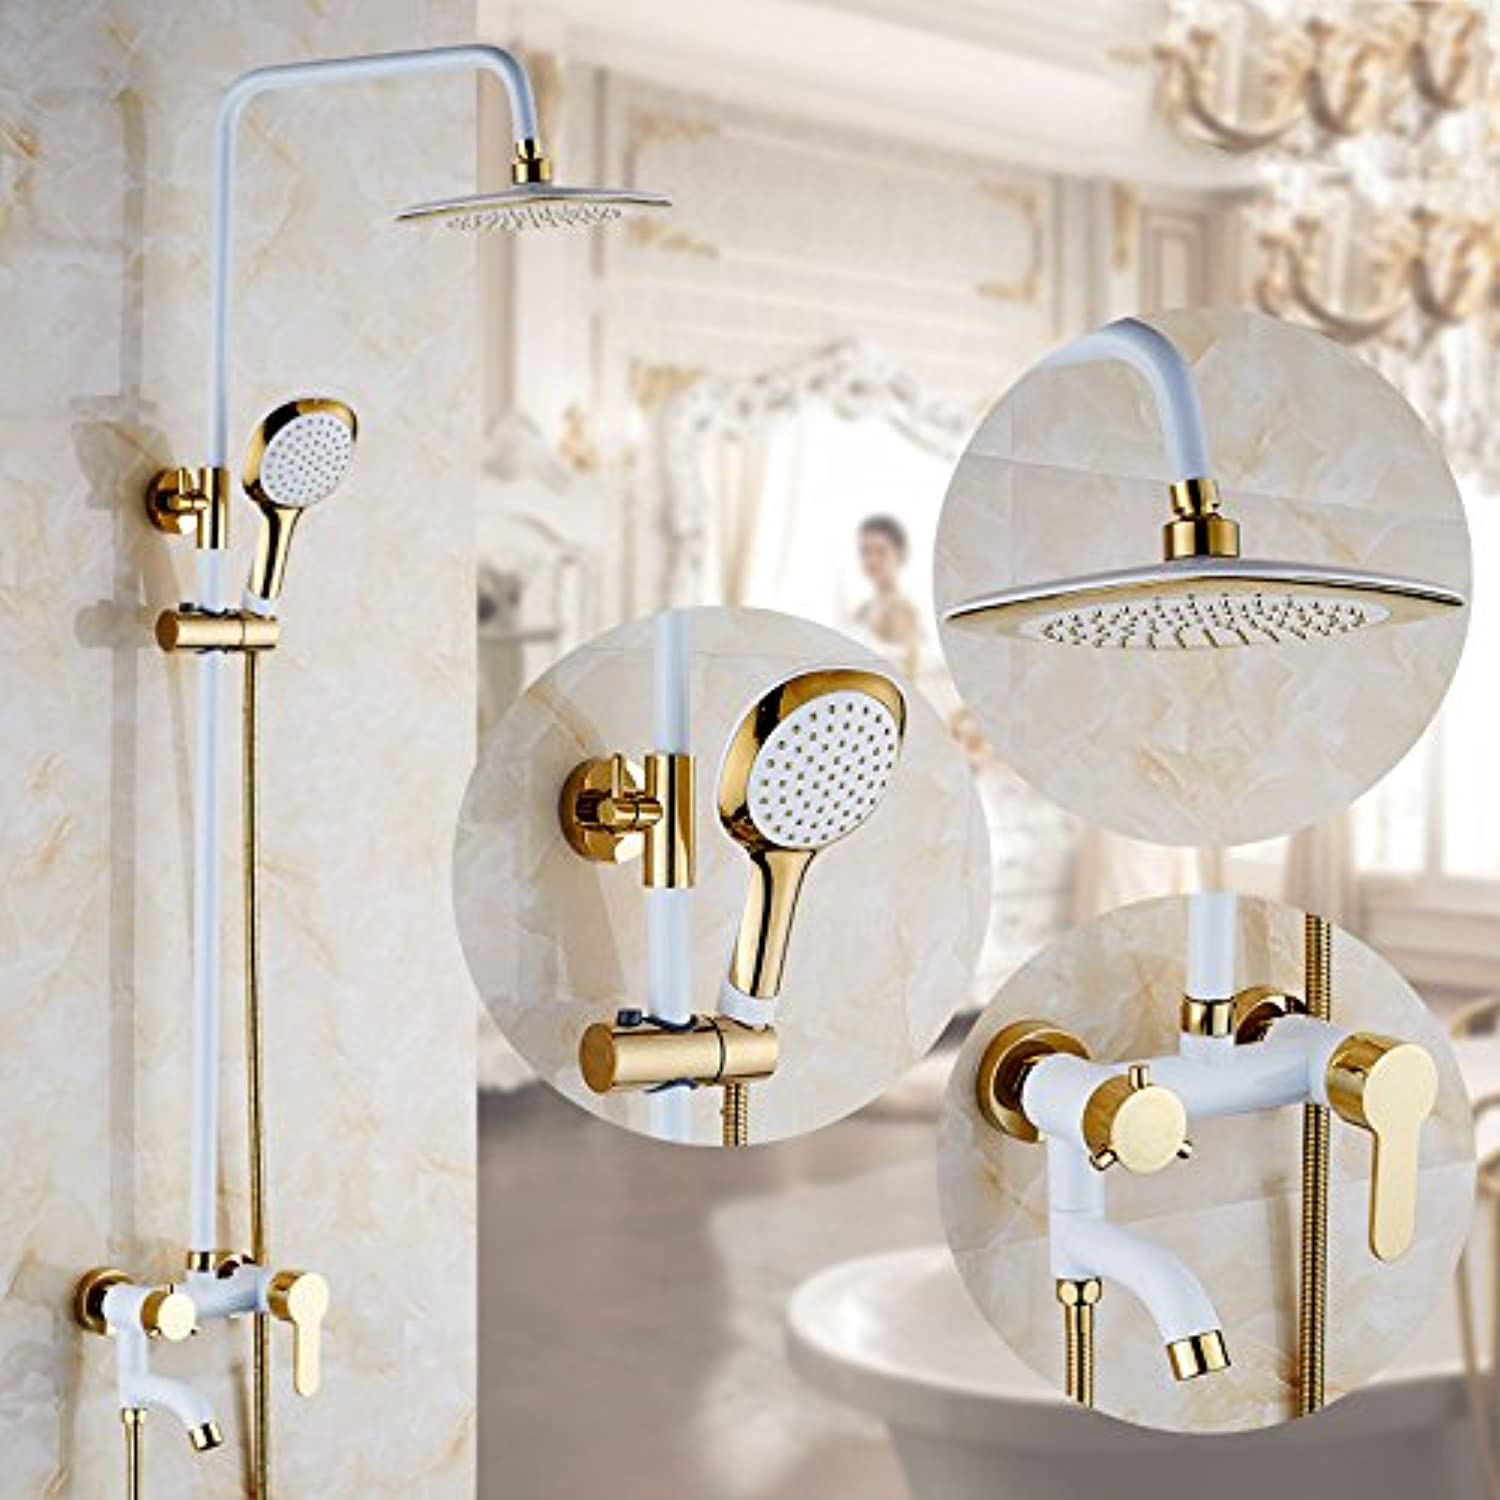 AiRobin-Continental Stylish Baked White Paint Brass gold Plated Shower System